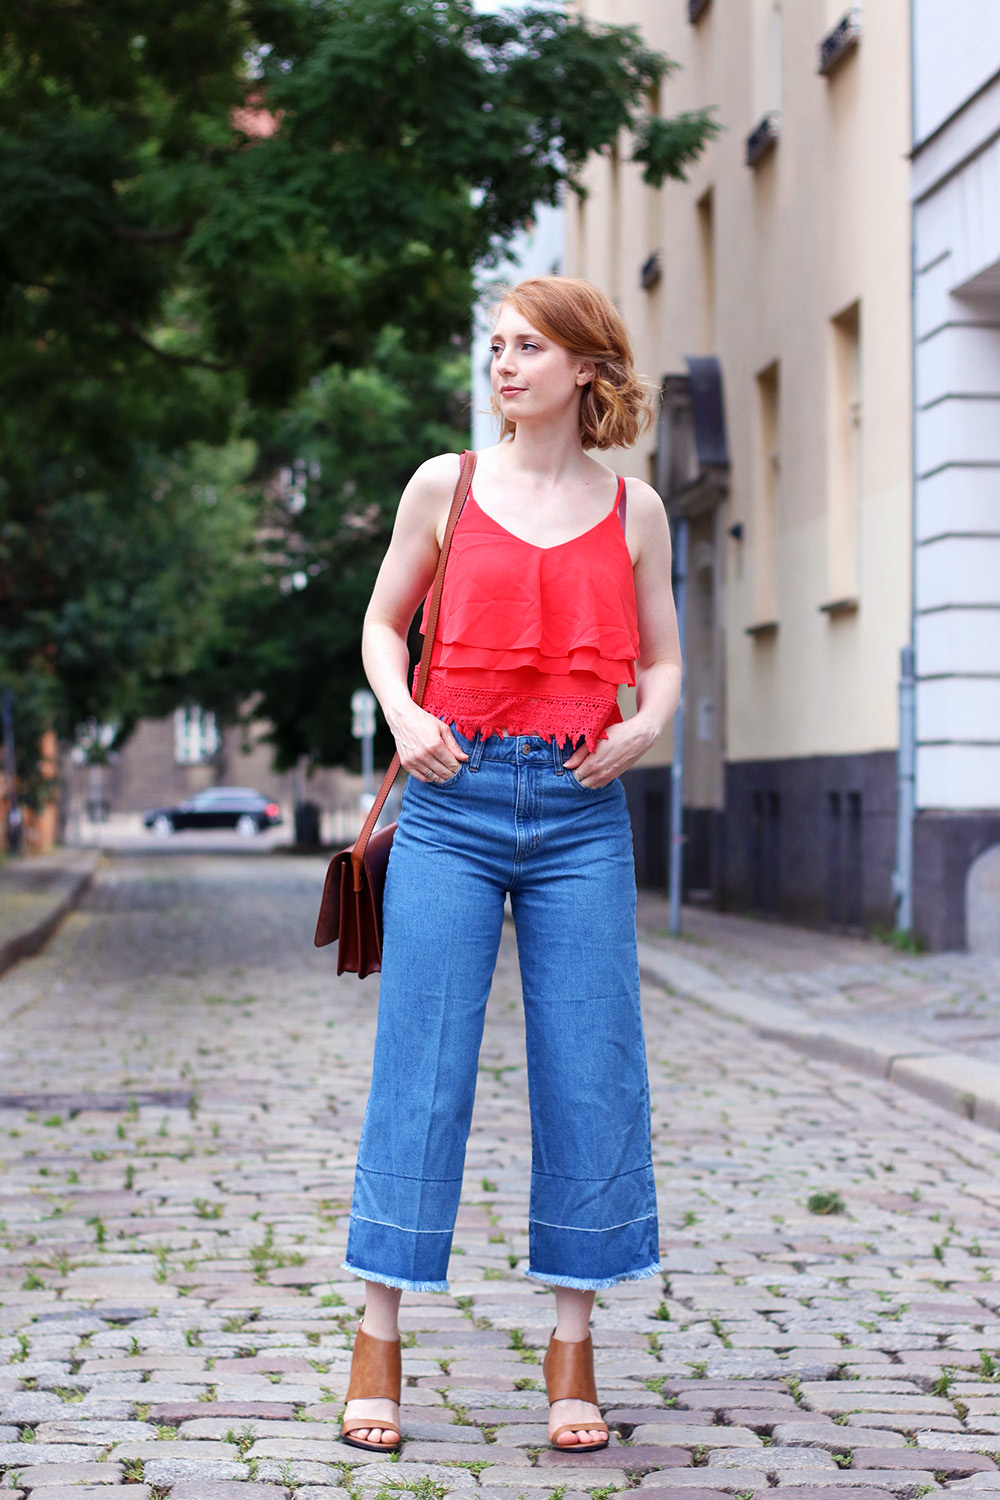 Trend 2016, Jeans Culotte, Hose, Sommer Look, Outfit, Tipps, Streetstyle, Modetipps, Finde deinen Stil, Influencer, Deutschland, Berlin, Mode Blog, Modeblog, Advance Your Style, advanceyourstyle